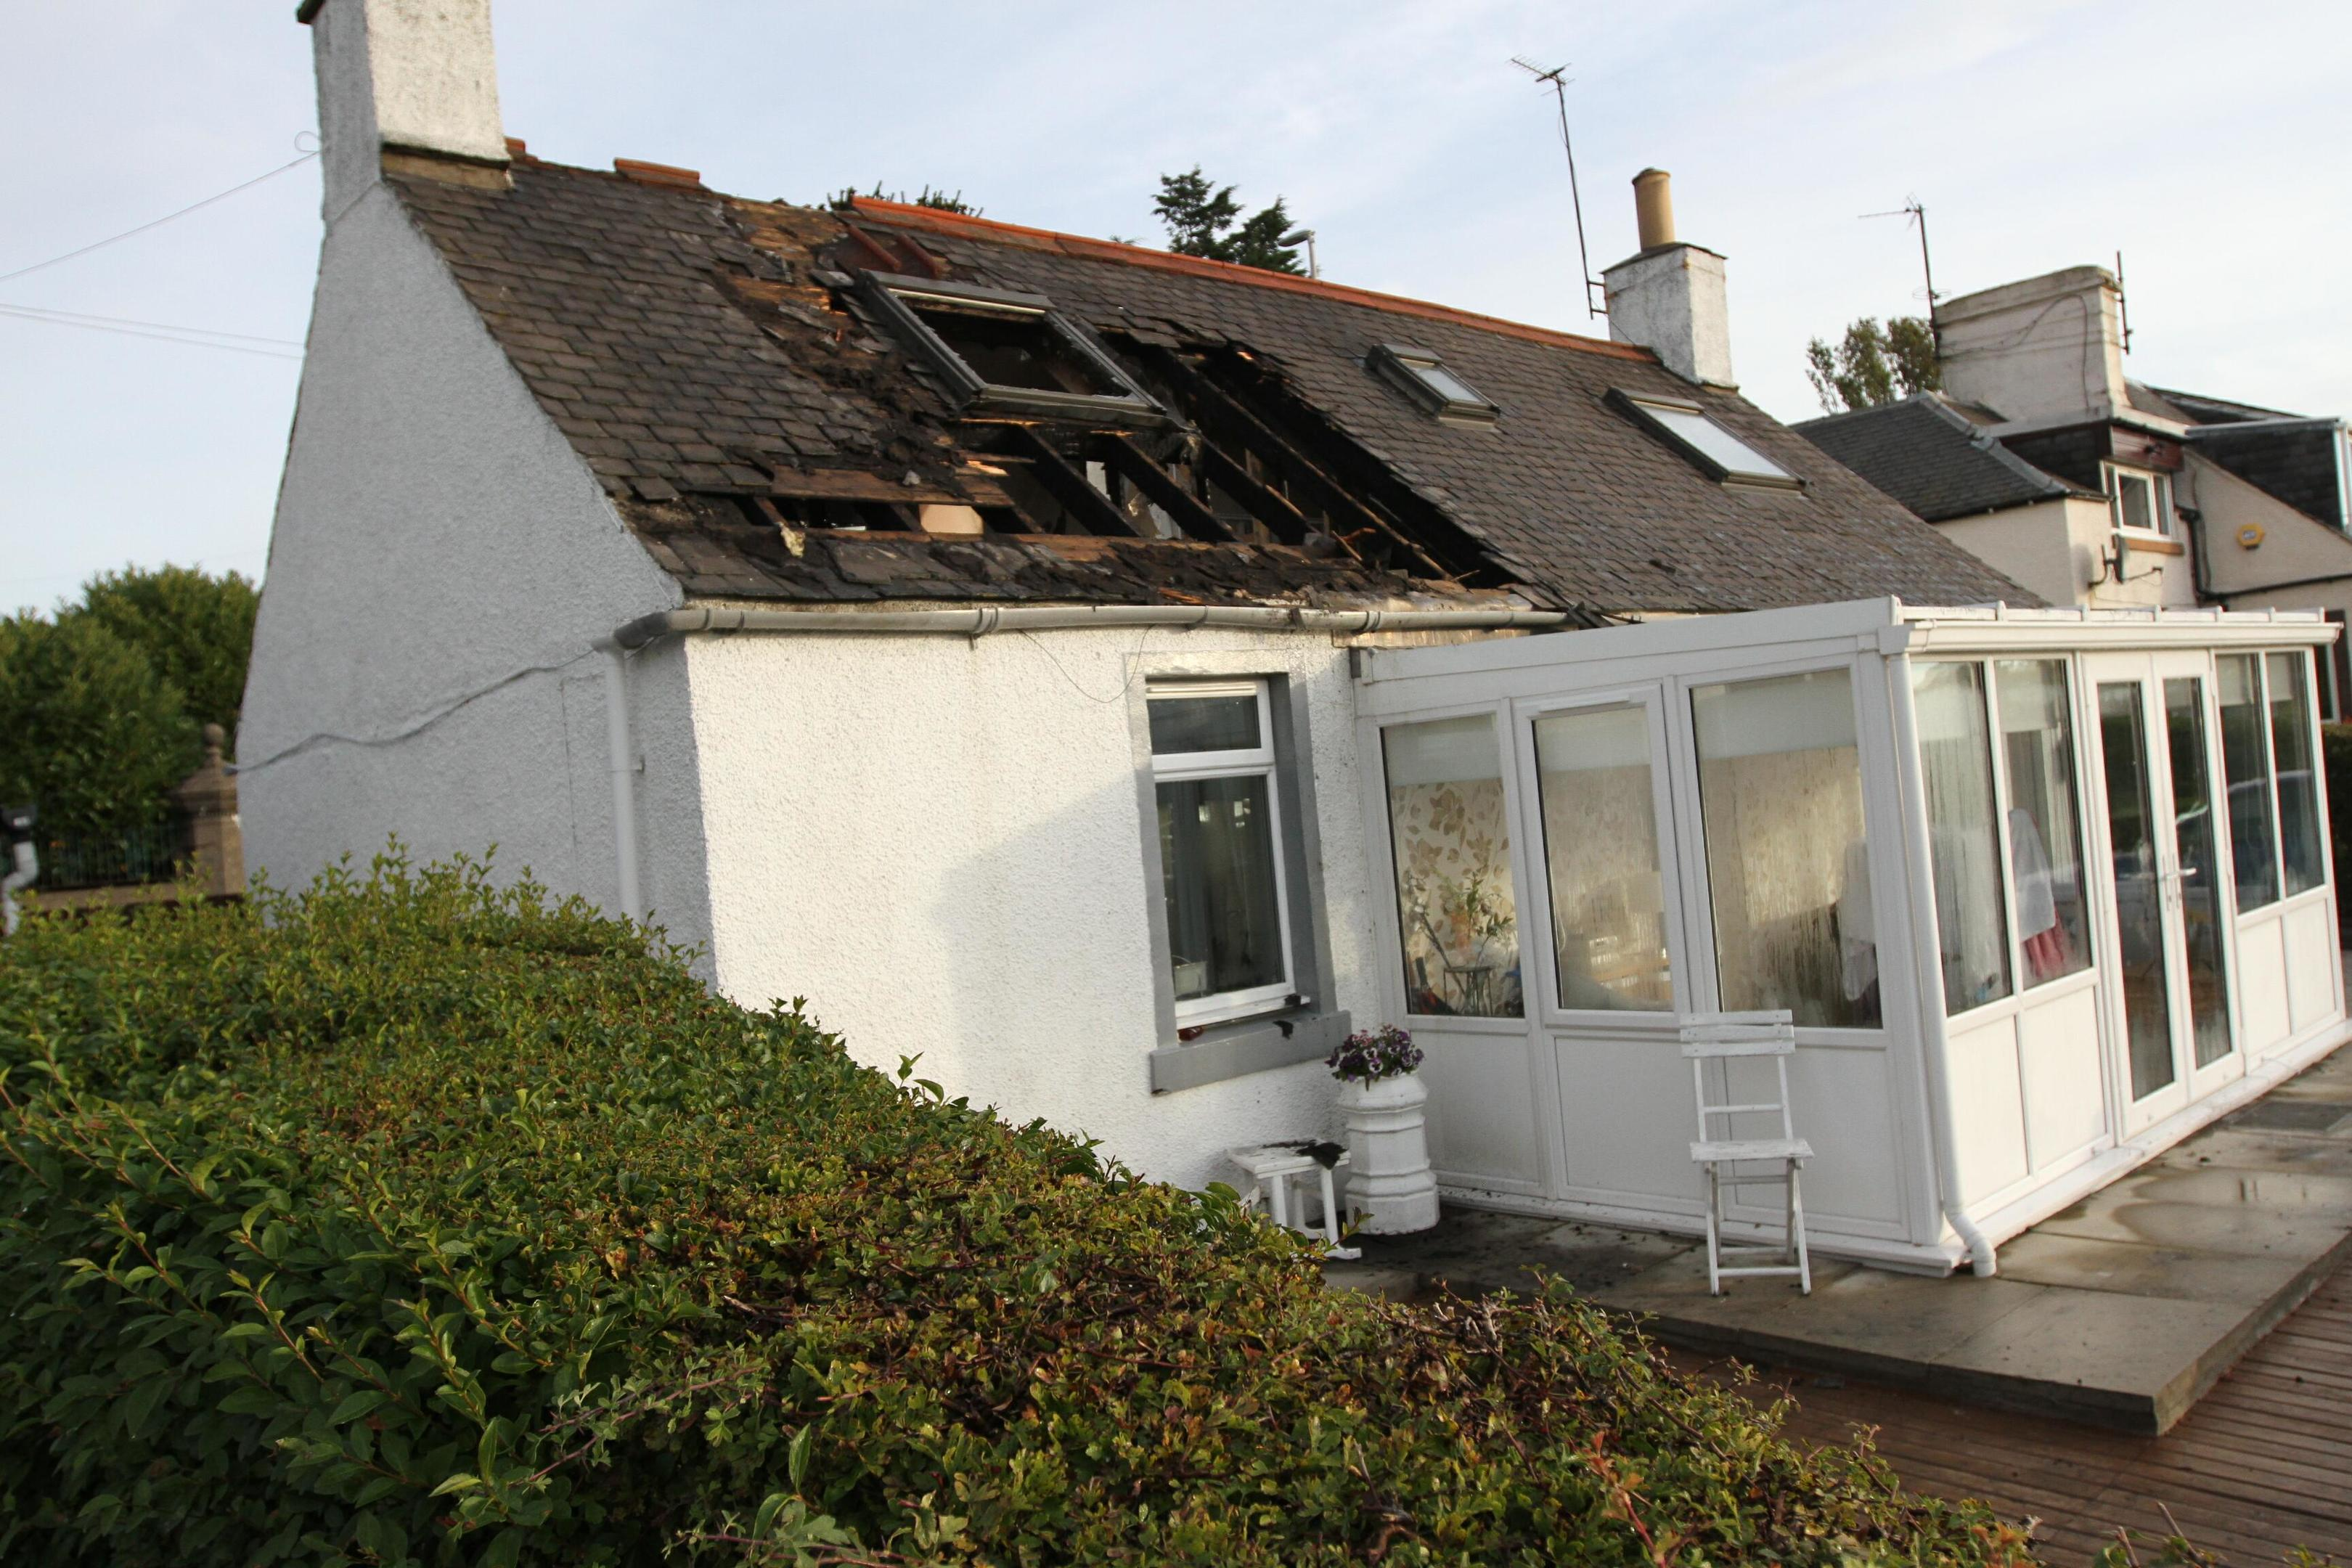 The house sustained damage to its roof.